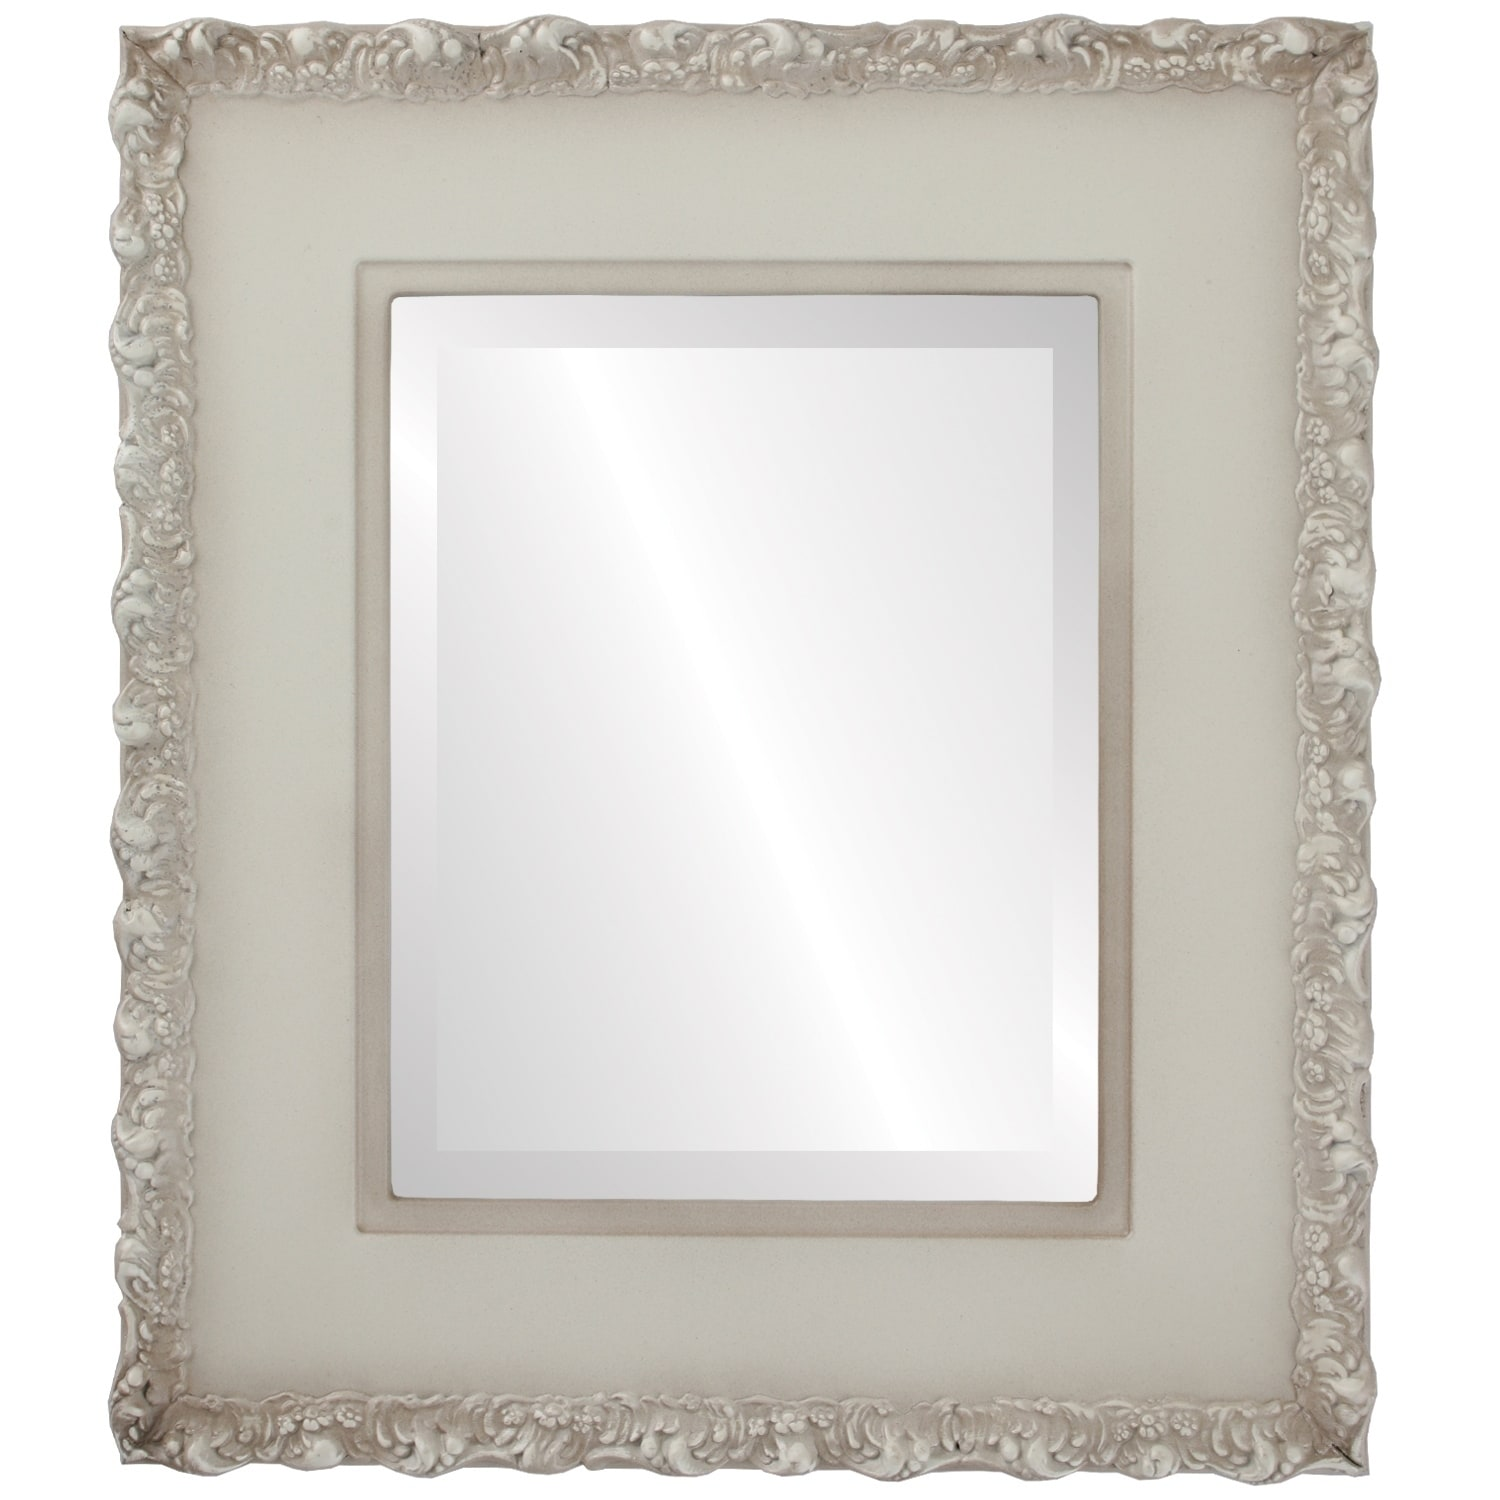 Williamsburg Framed Rectangle Mirror in Taupe (31x43 - Large (over 32 high))